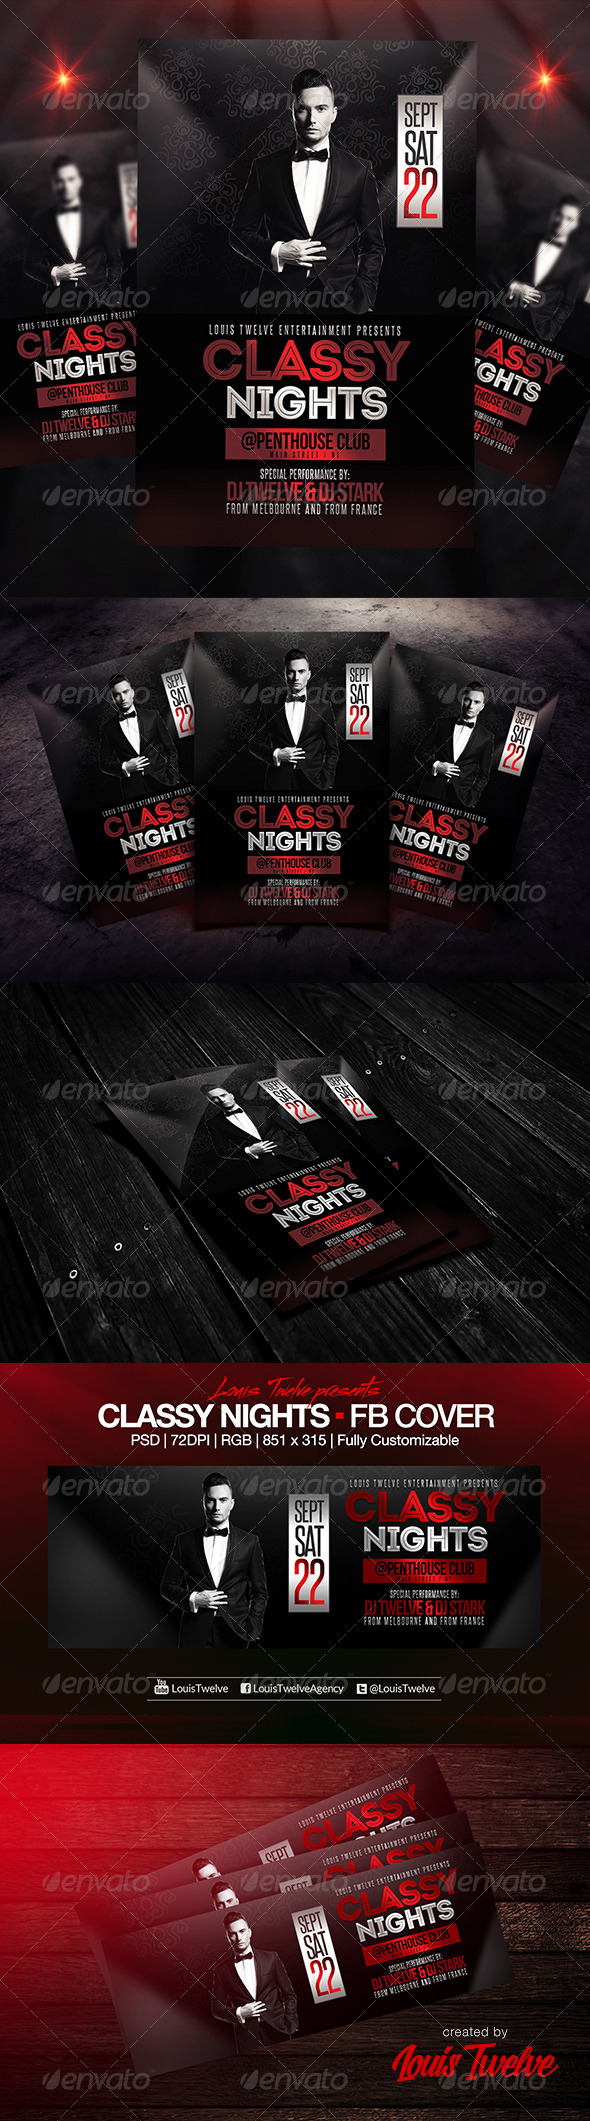 GraphicRiver Classy Nights Flyer & FB Cover 8639198